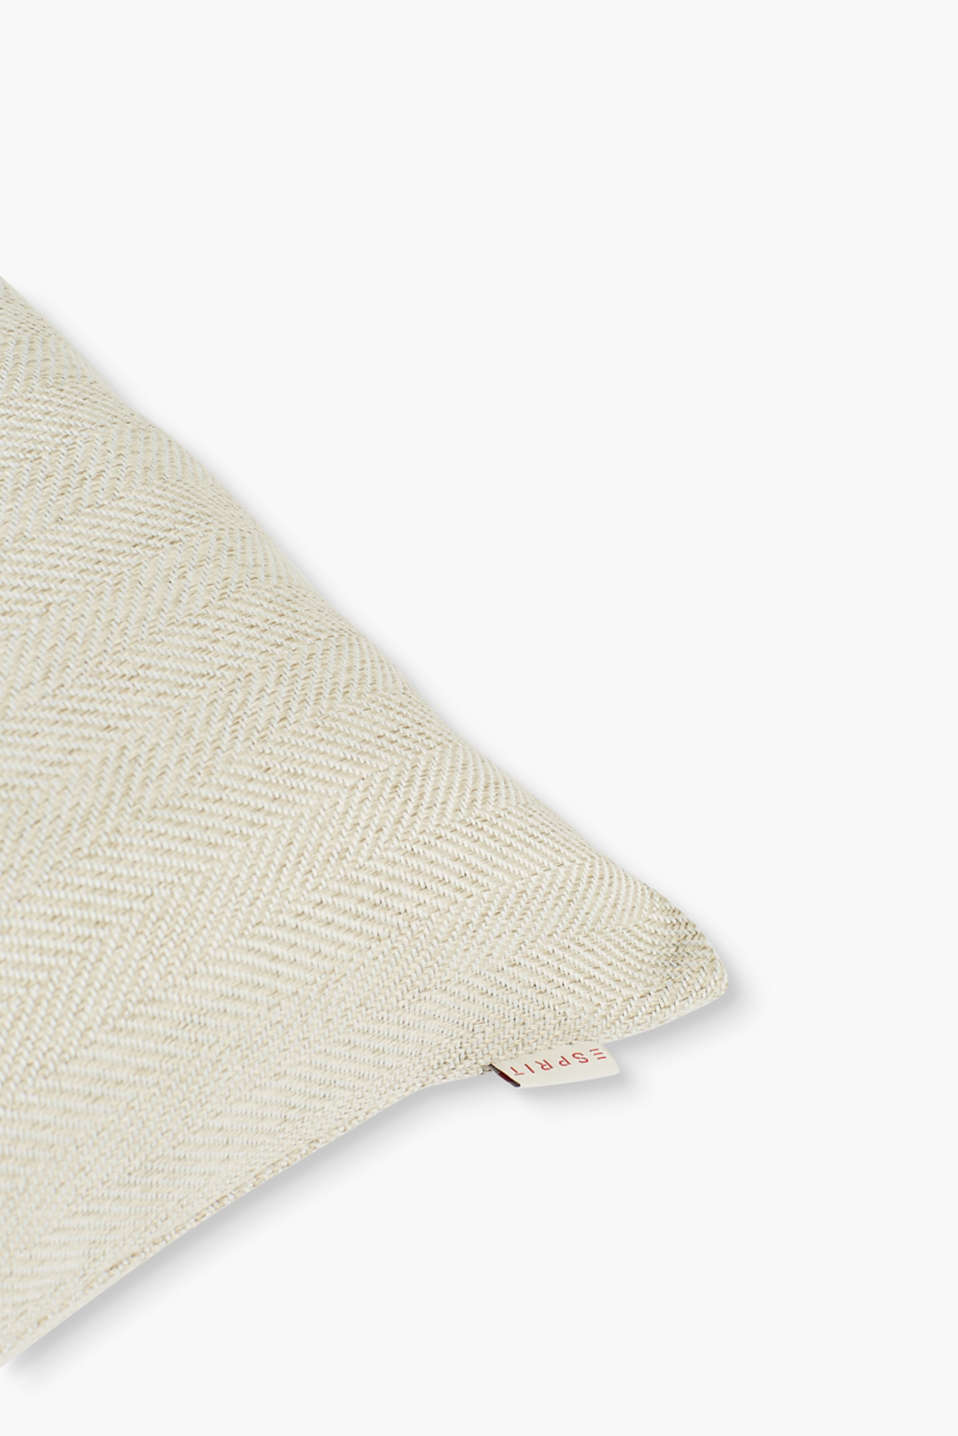 Baia woven cushion cover, NATURE, detail image number 1